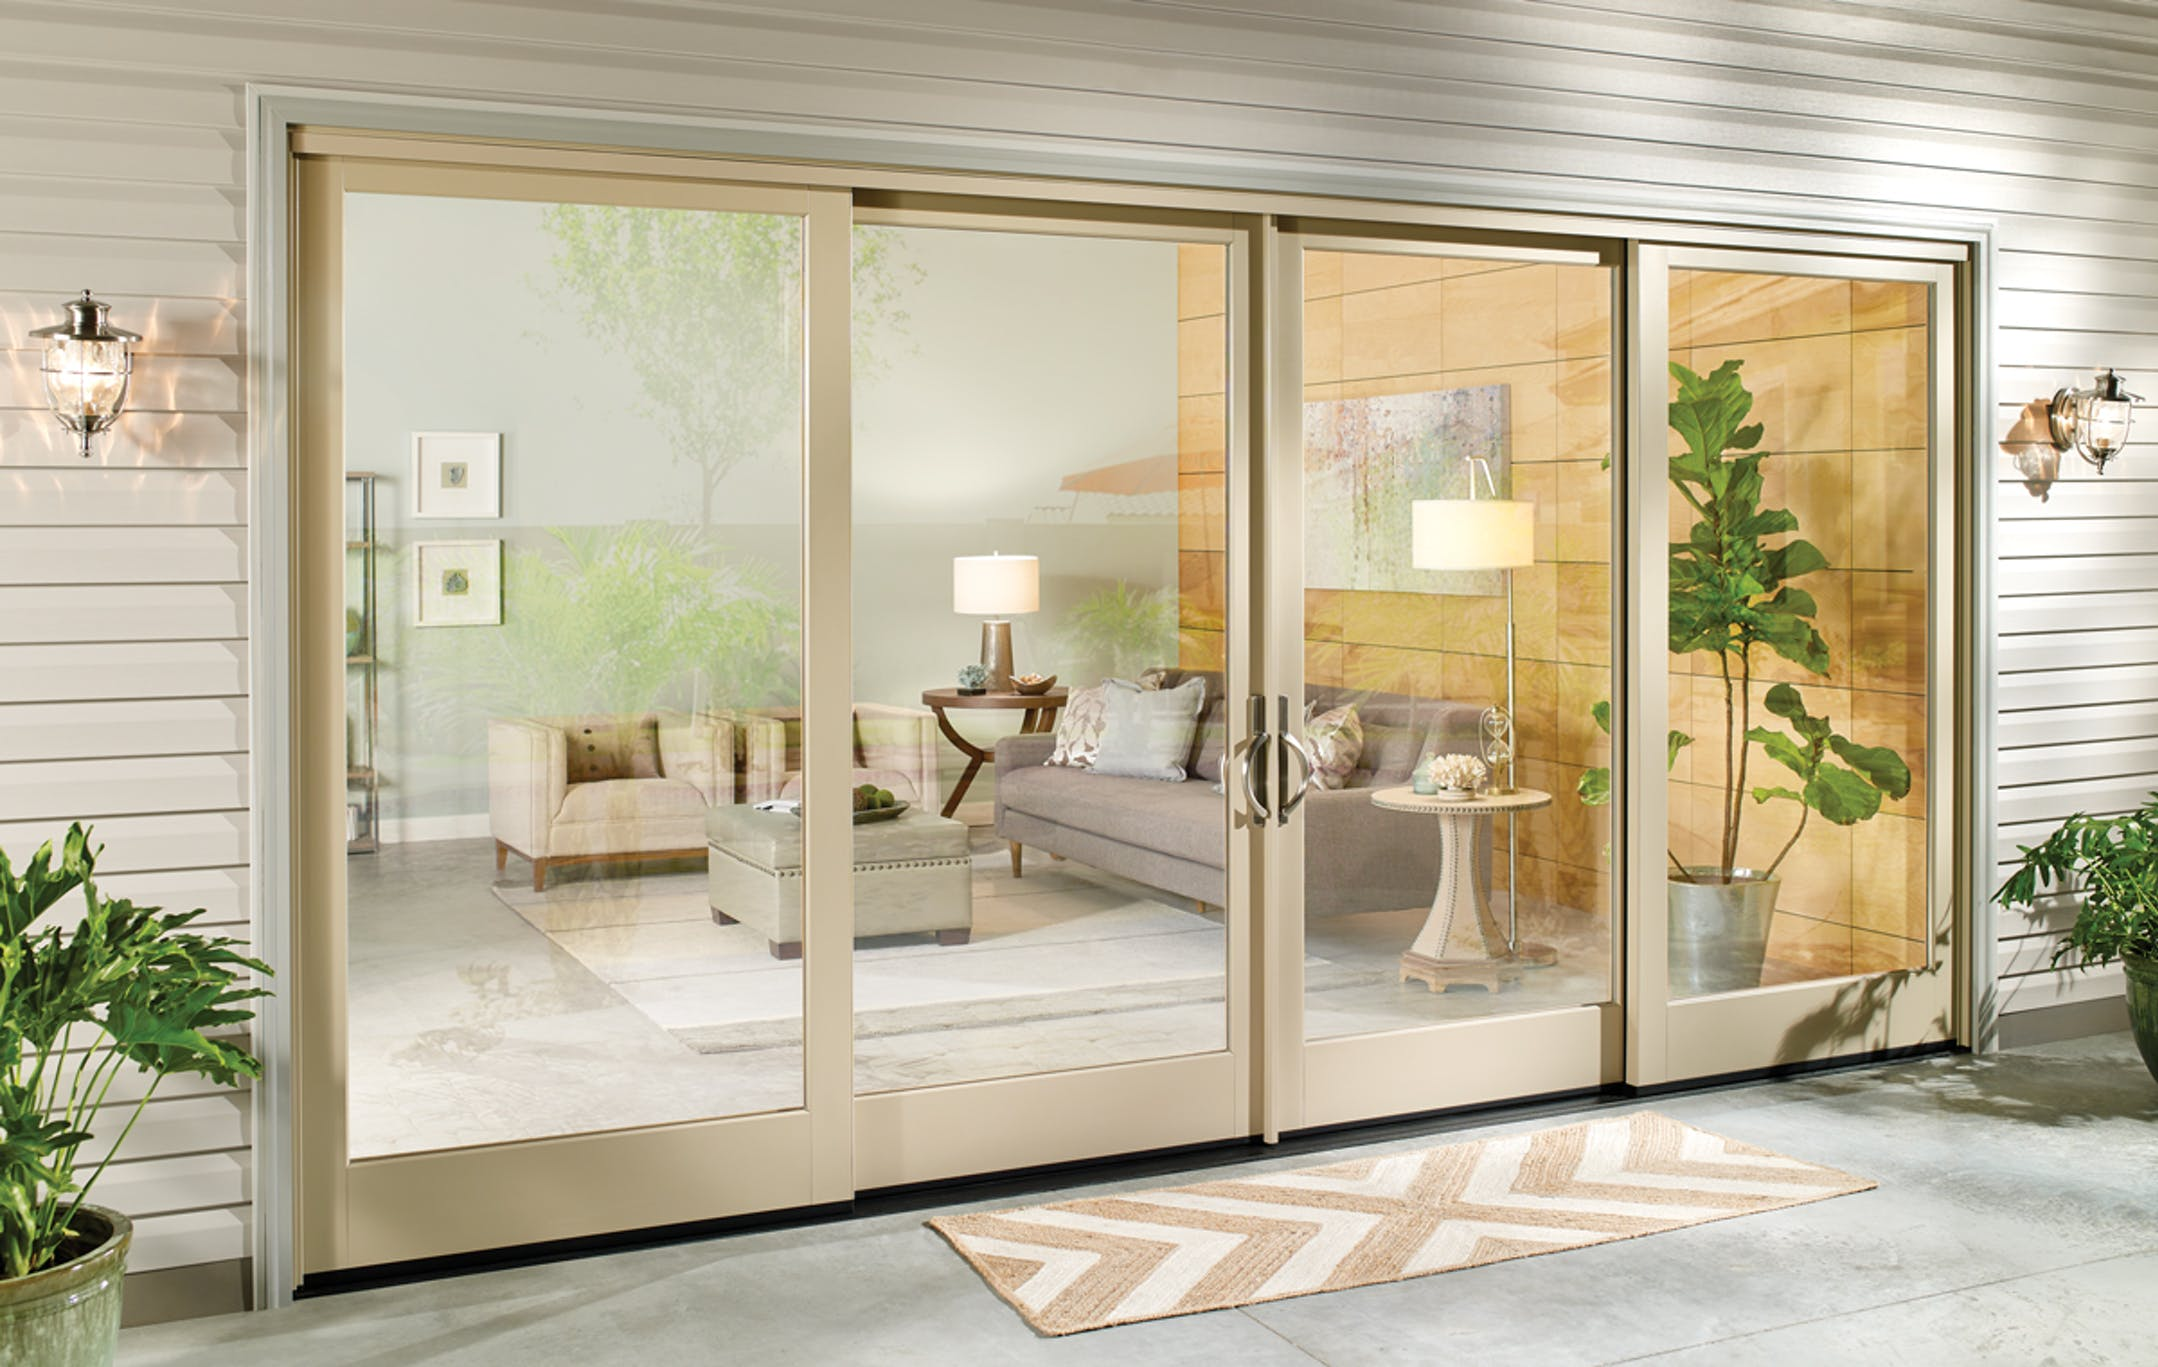 4 Panel Milgard Essence Sliding Patio Door